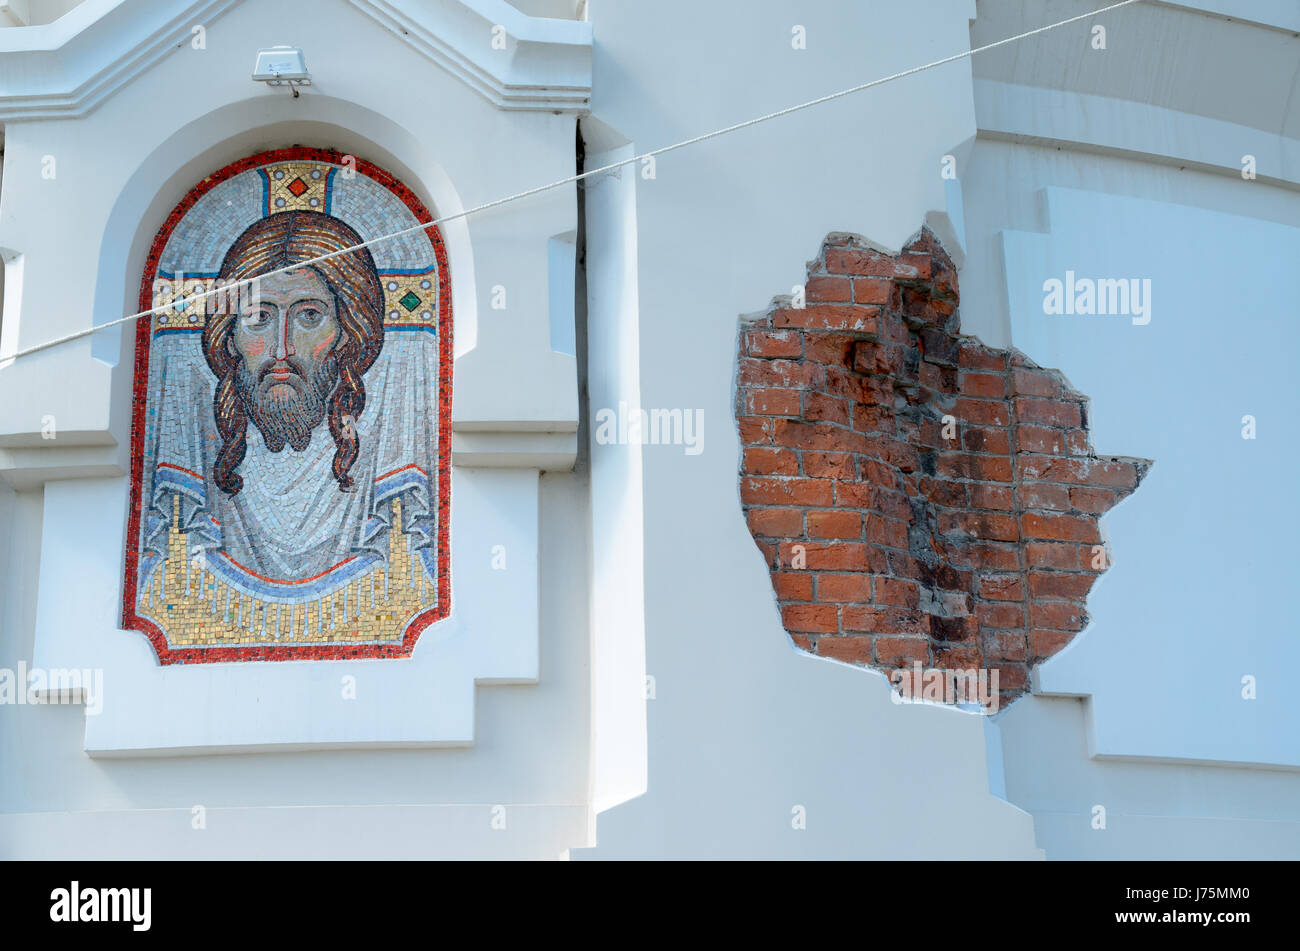 The image of Christ on the wall next to the bare brick. - Stock Image